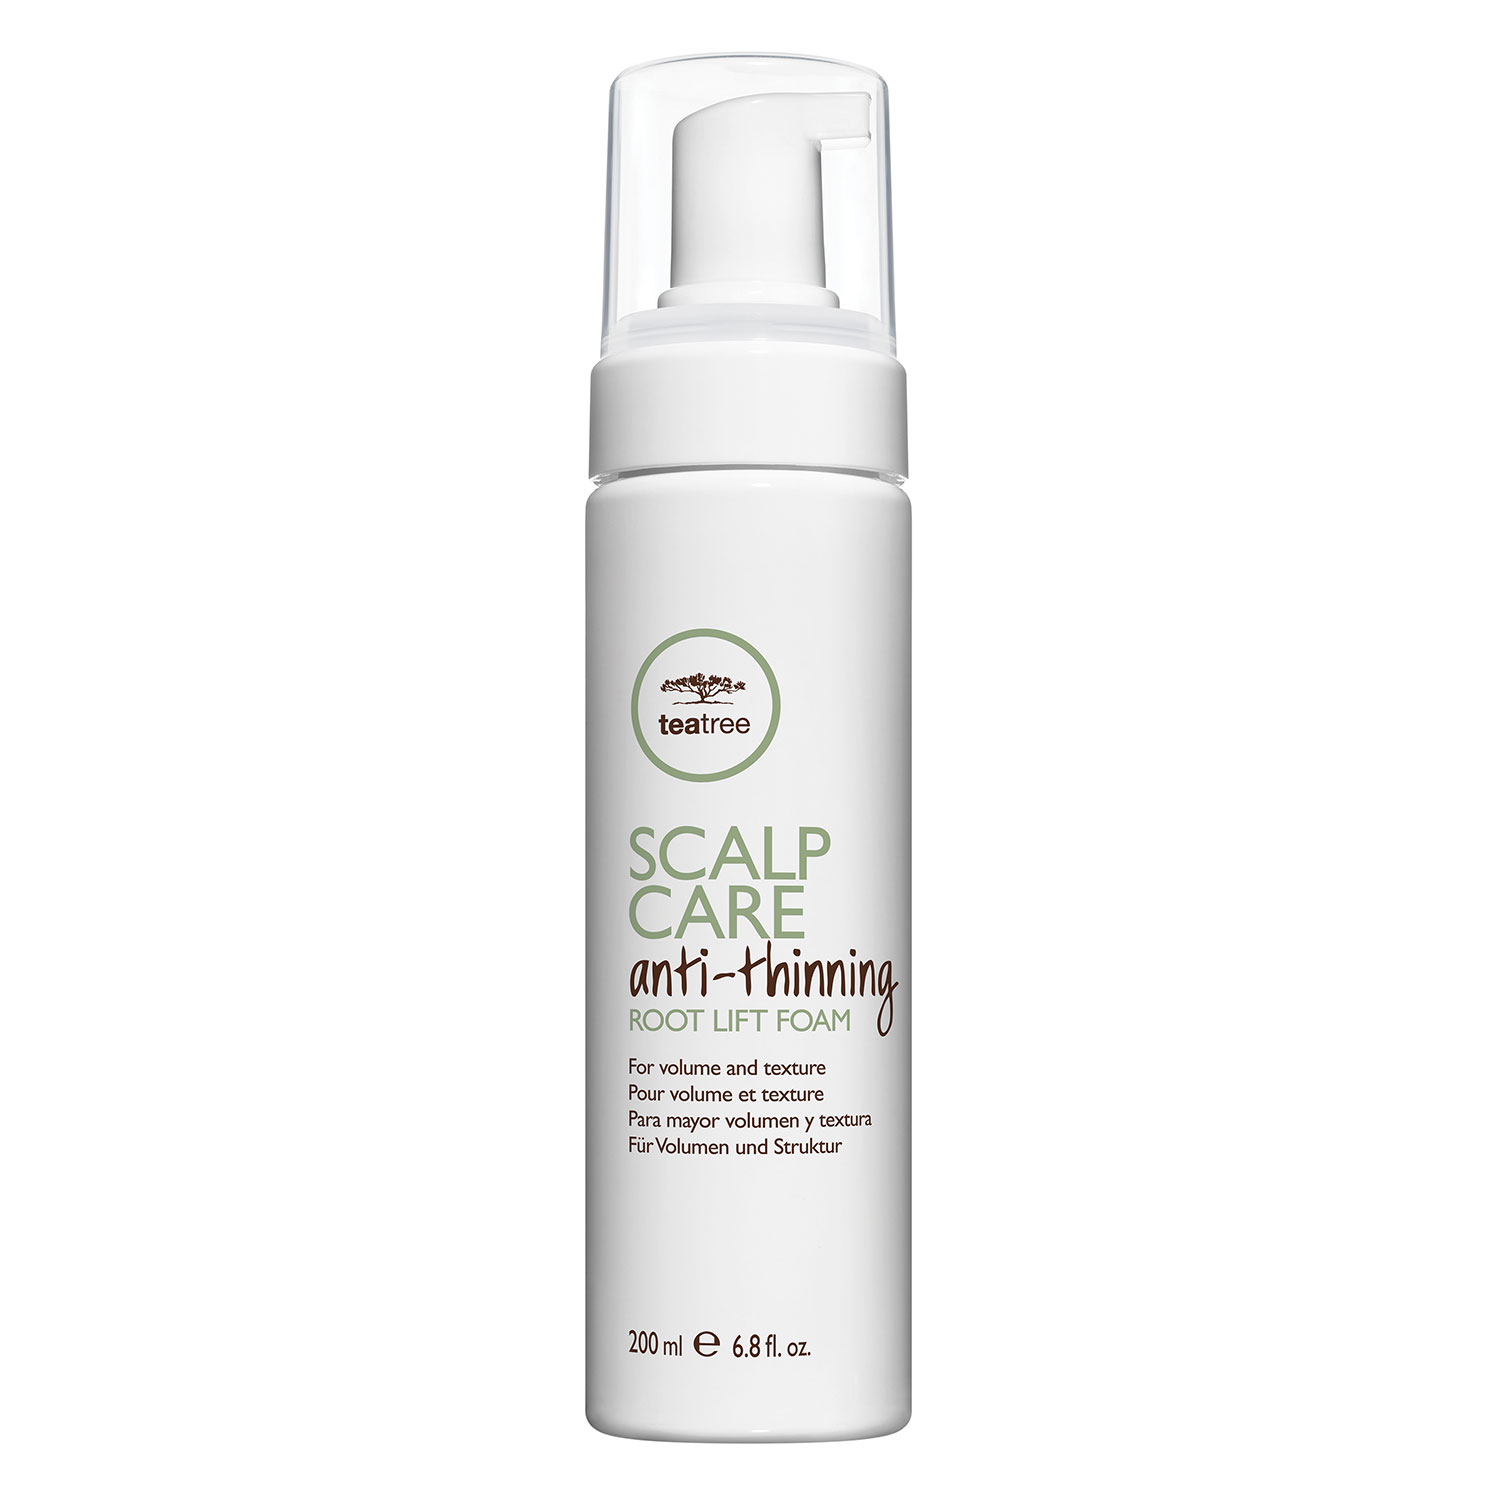 Tea Tree Scalp Care - Anti-Thinning Root Lift Foam